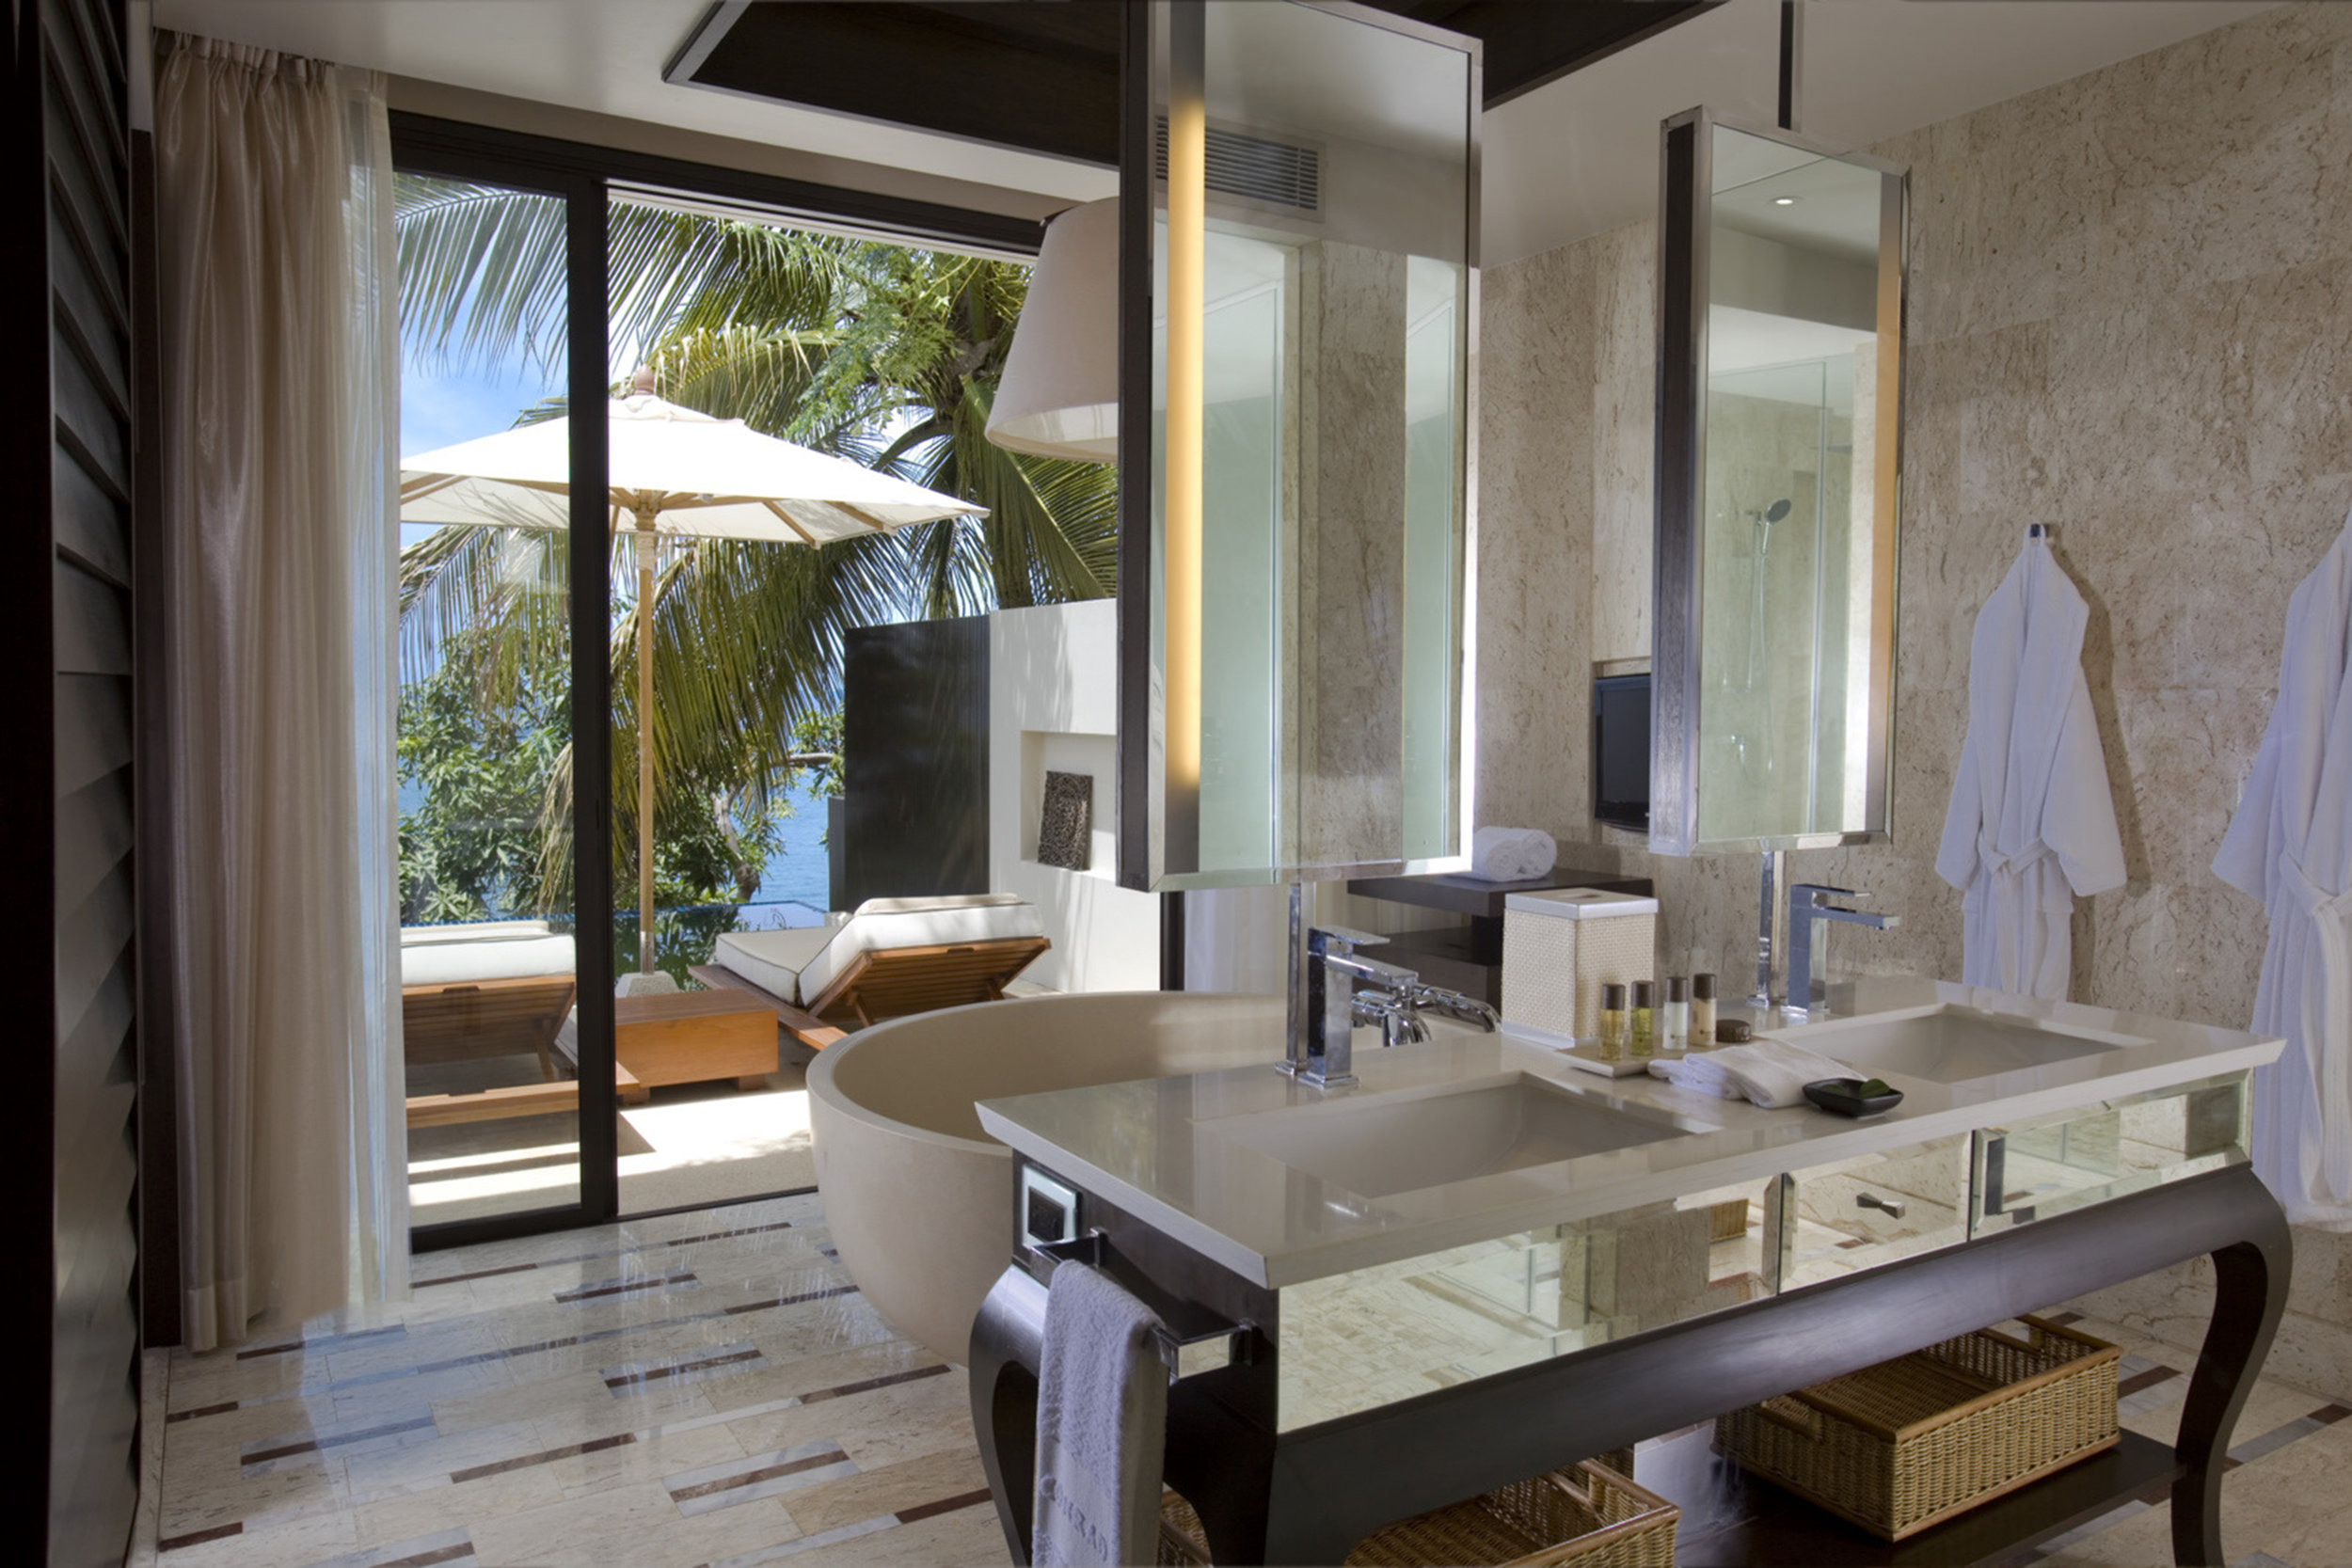 The main feature of the villa is the sizable spa-inspired bathroom that is fronted by floor-to-ceiling glass doors that open to the private outdoor patio and pool.